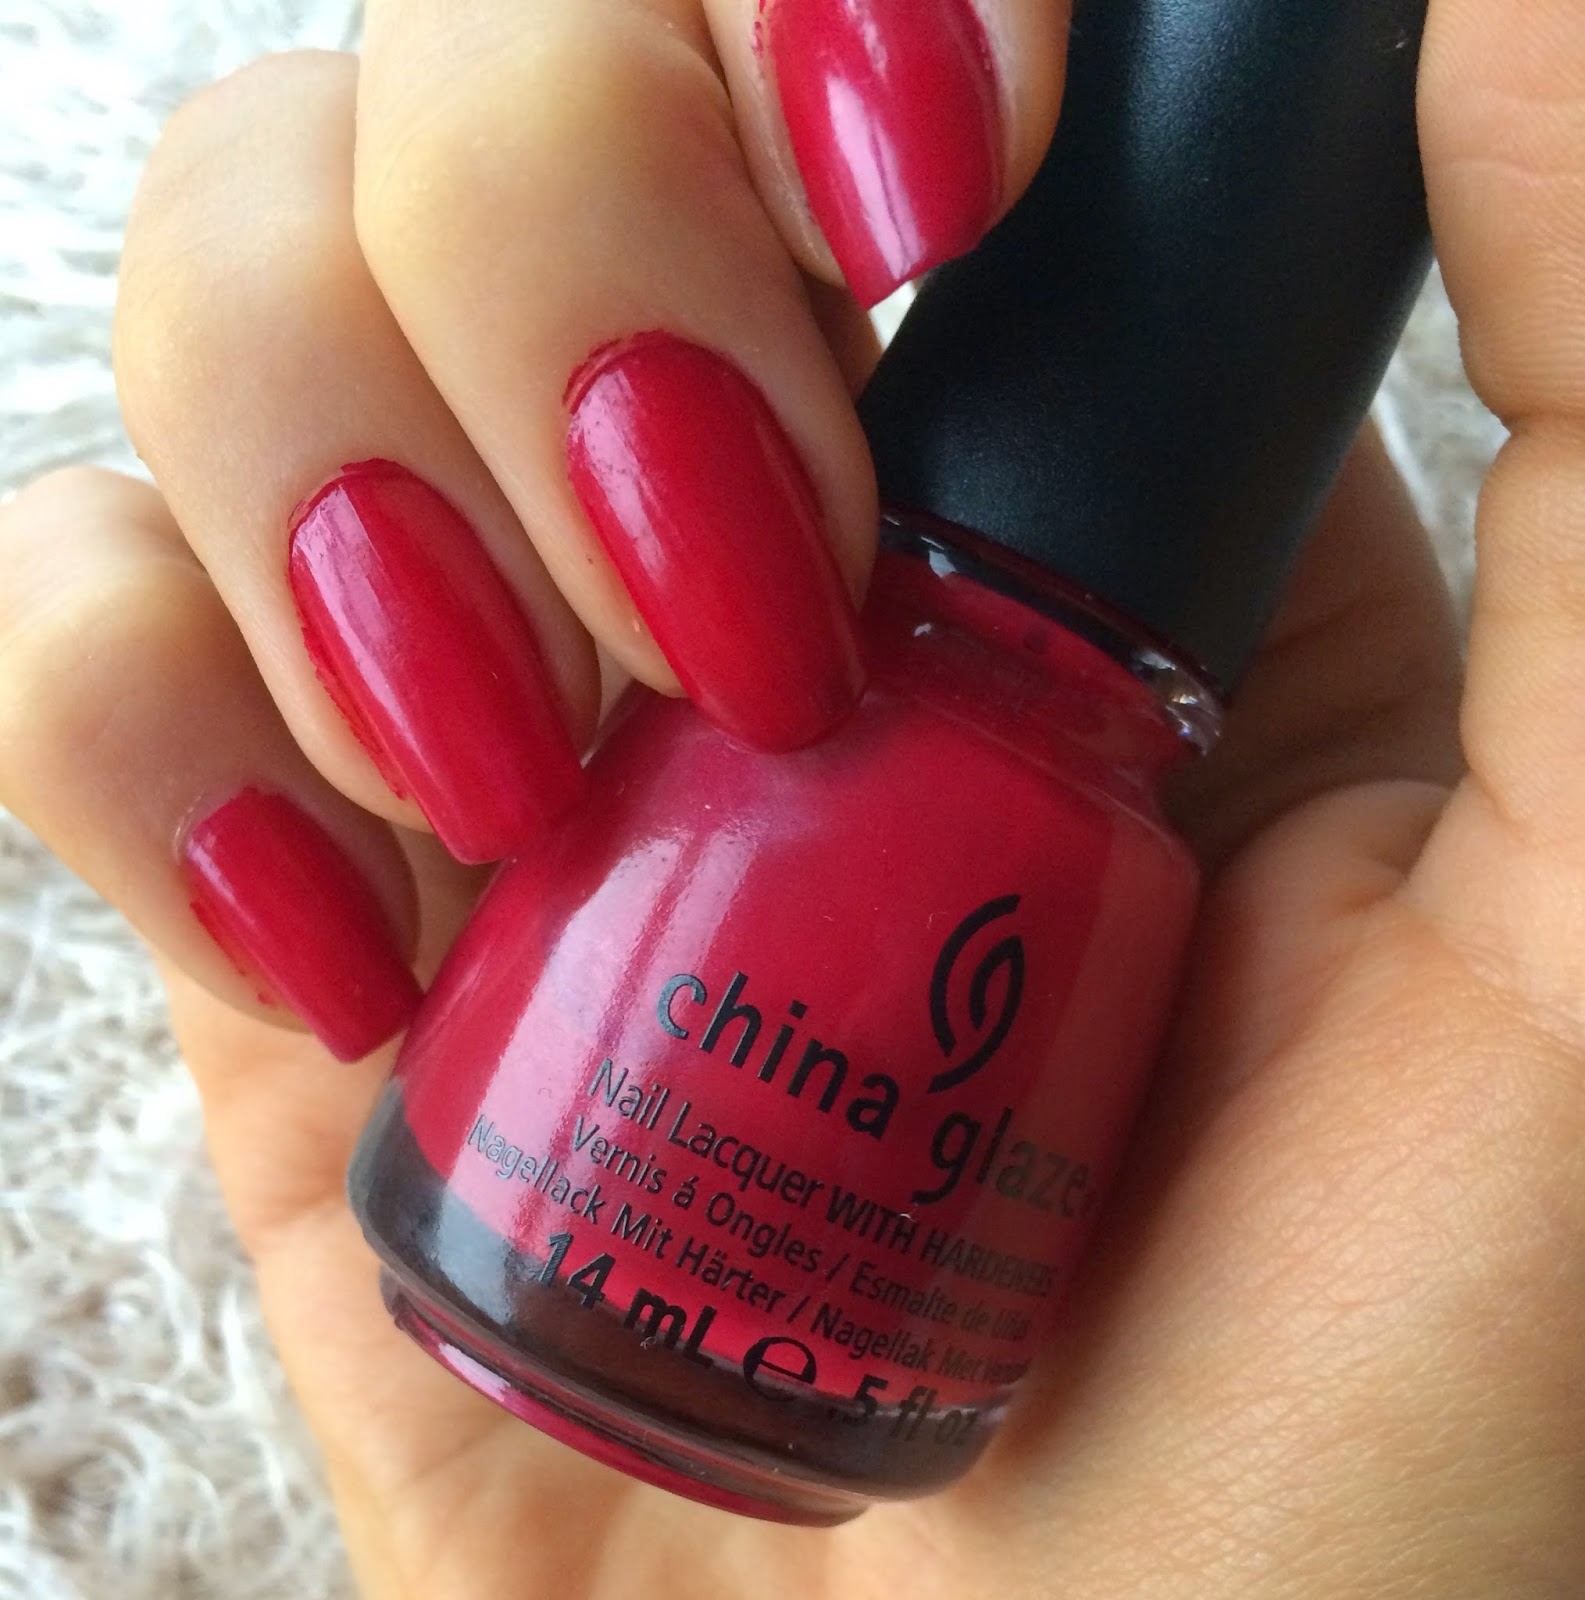 Coloristiq-bing-cherry-china-glaze